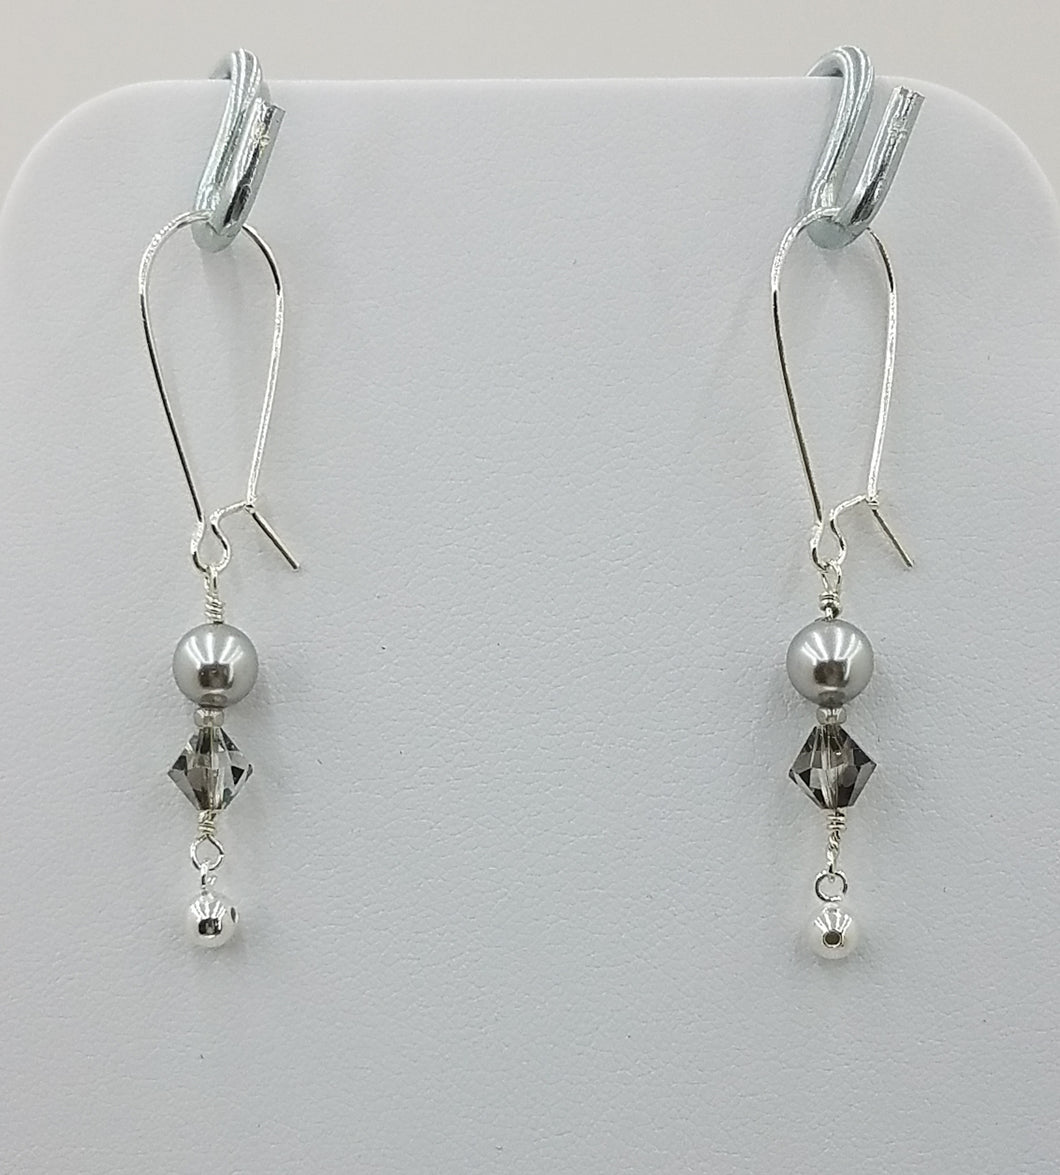 long-kidney-grey-Swarovski-Crystals-Pearls-Miyuki-Delica-Necklace-Earrings